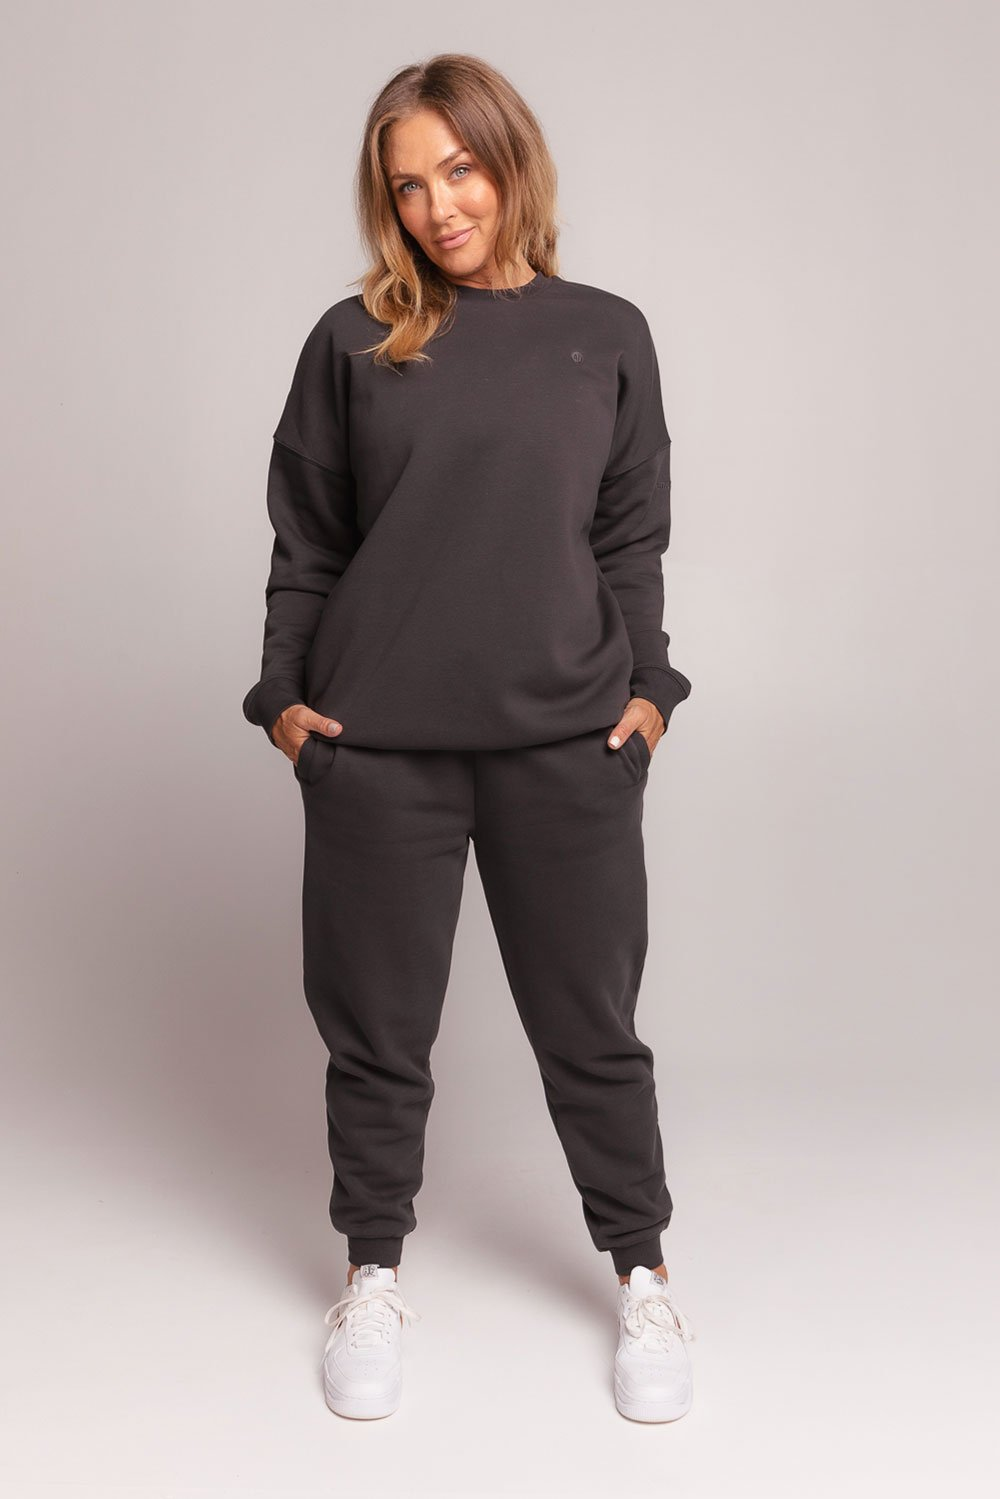 oversized-sweatshirt-black-large-front